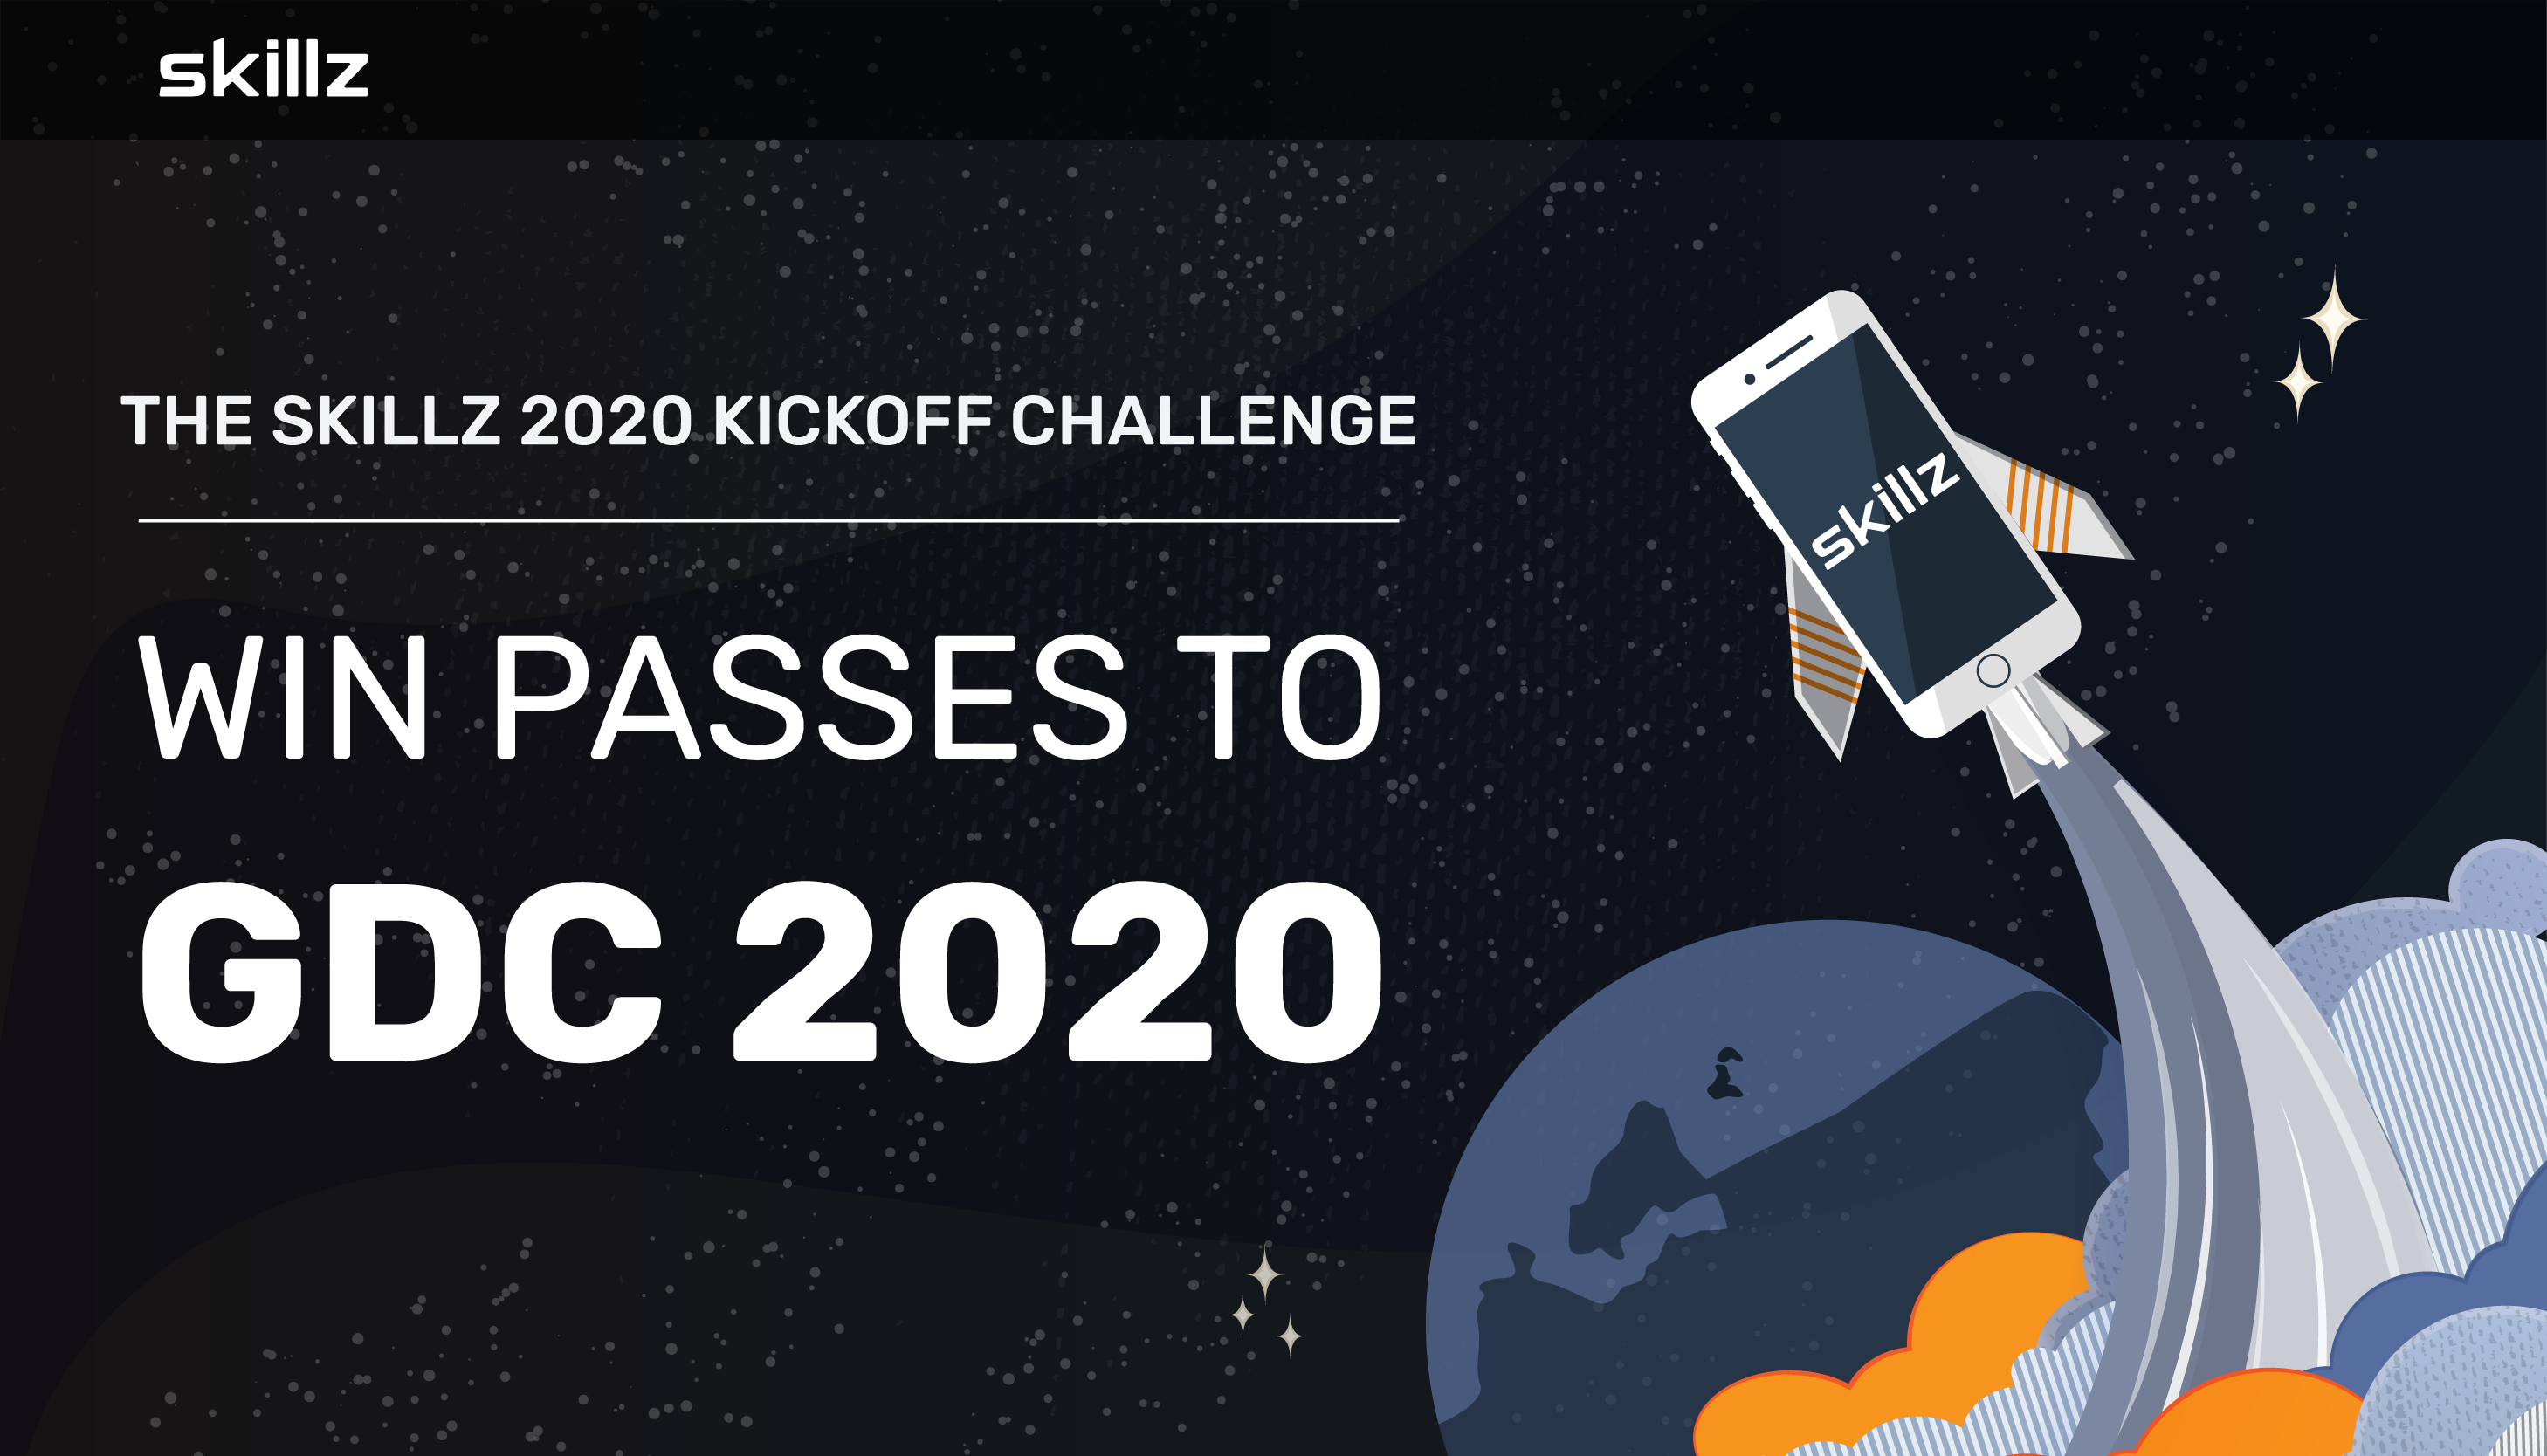 Skillz 2020 Kickoff Challenge Empowers Game Studios to